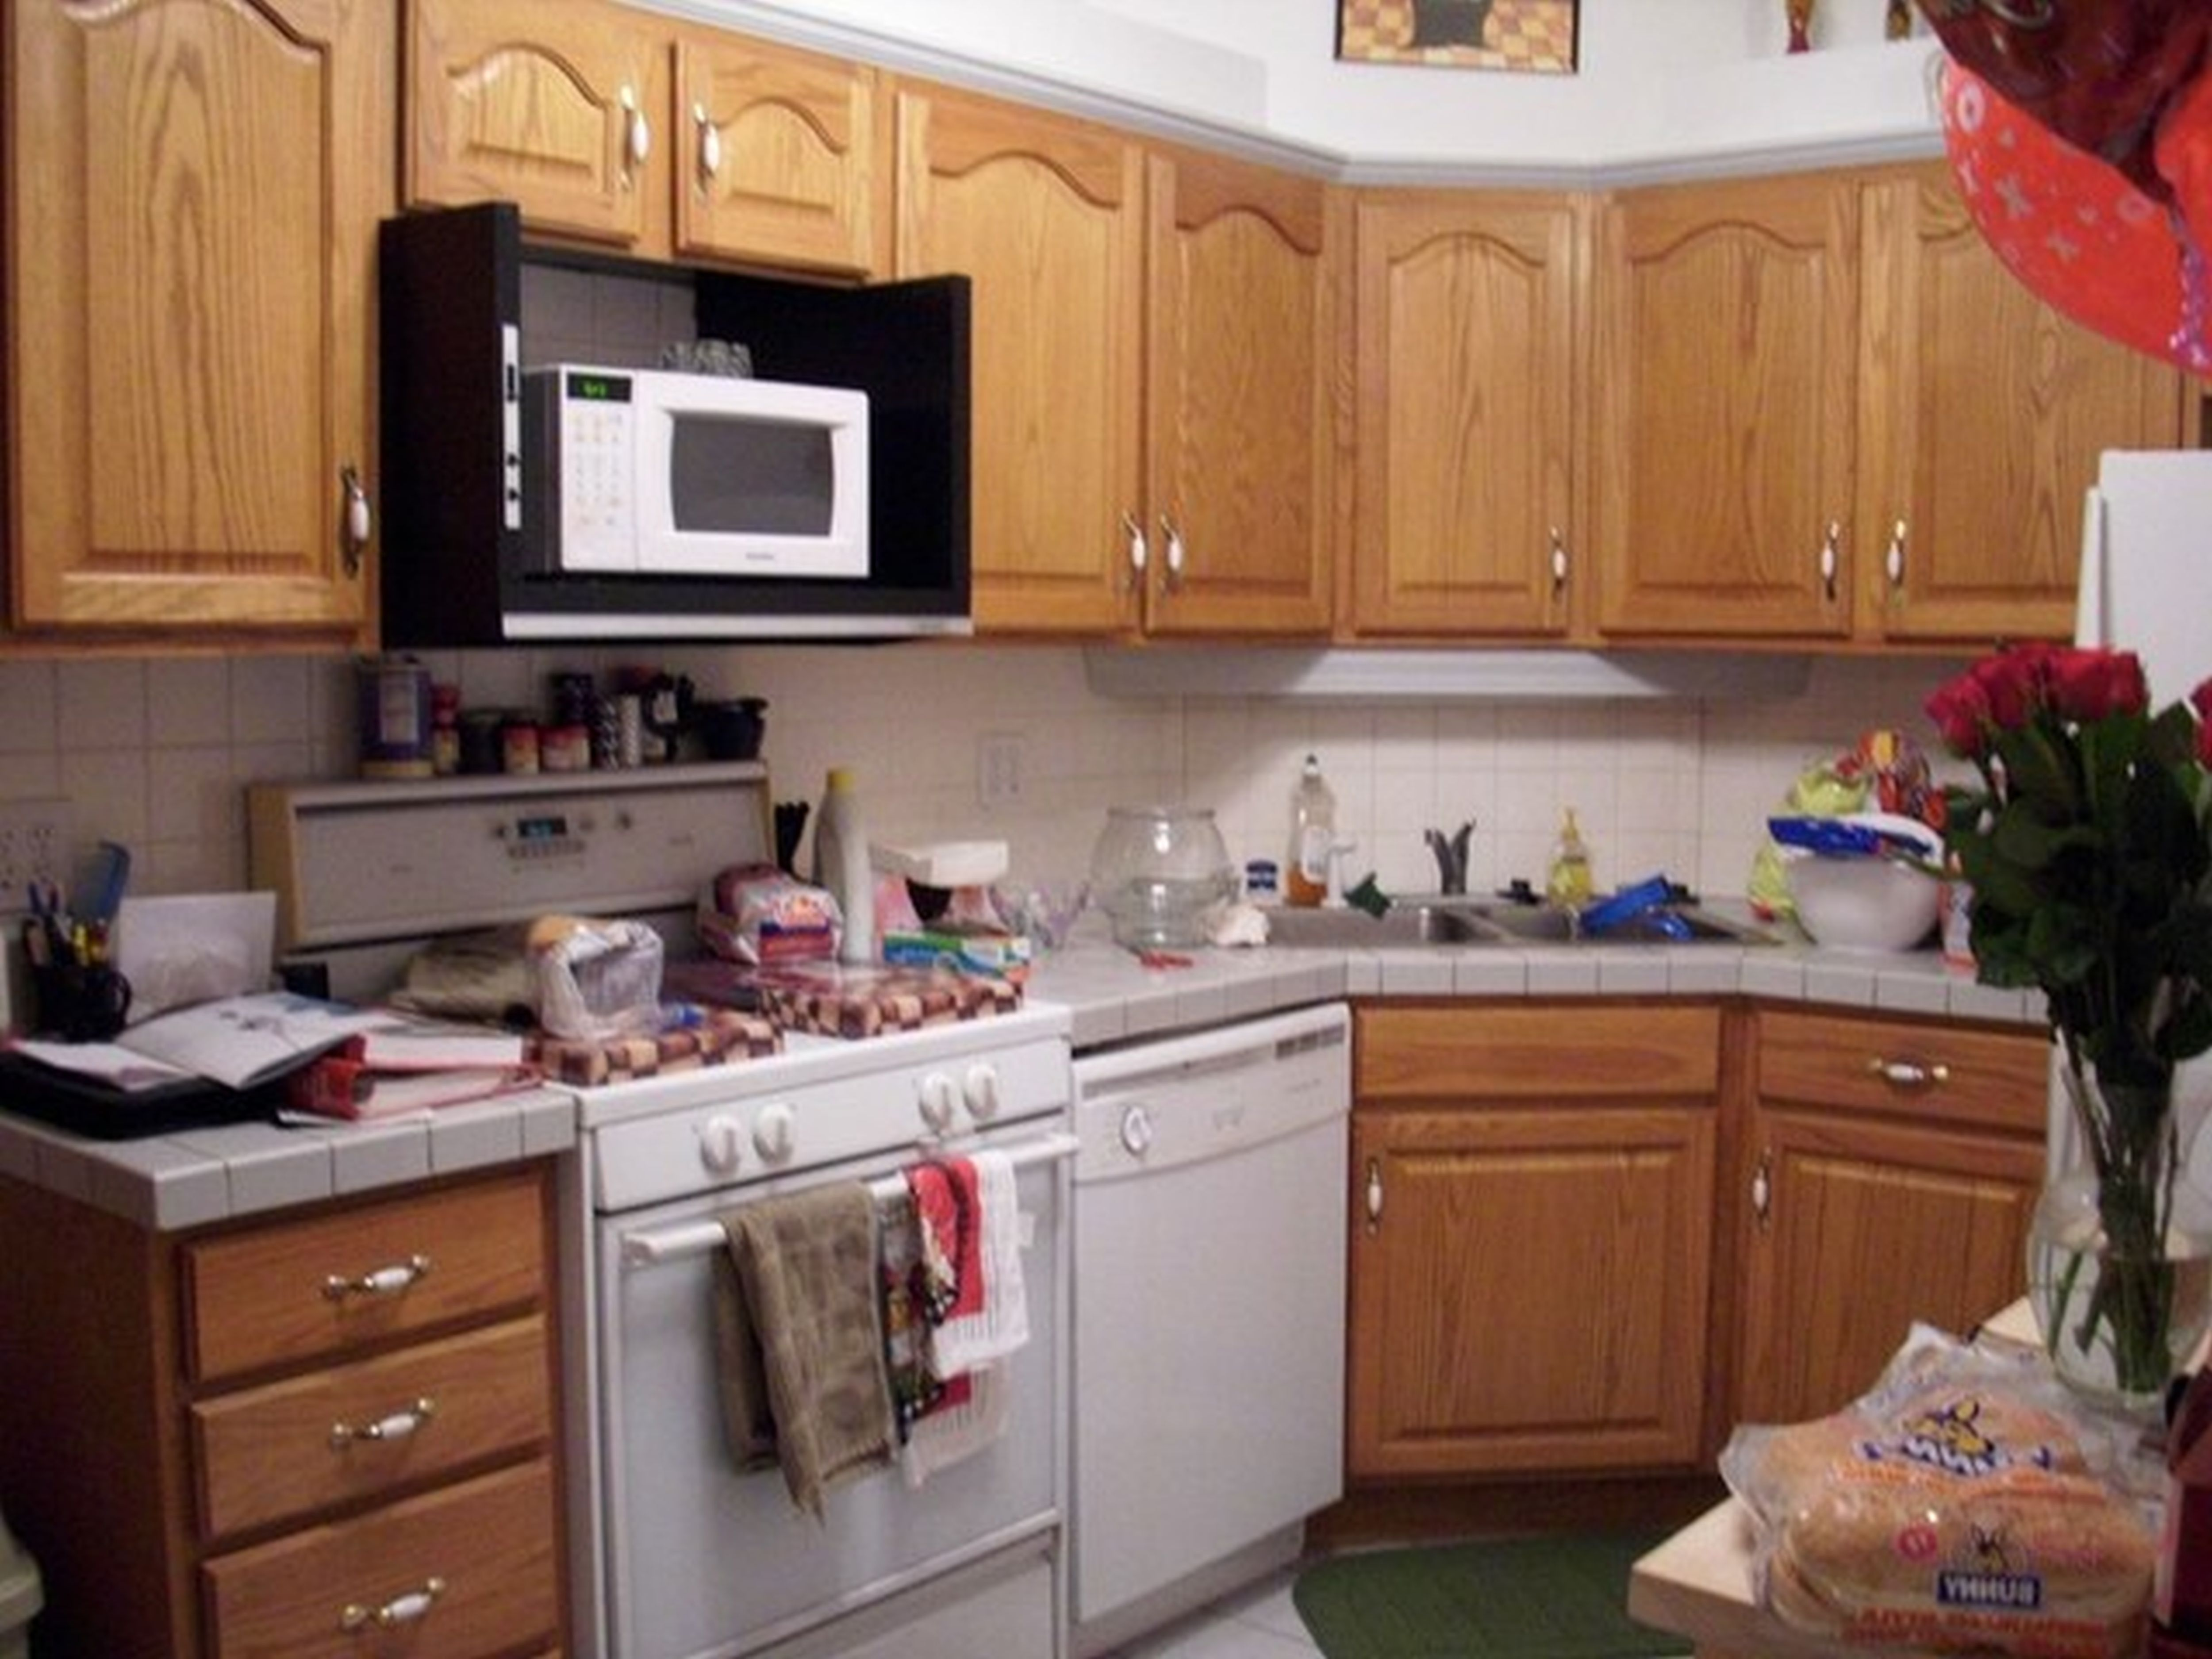 Best Kitchen Gallery: Pare Kitchen Cabi Makers Garecscleaningsystems of Cheap Kitchen Cabinet Knobs on cal-ite.com